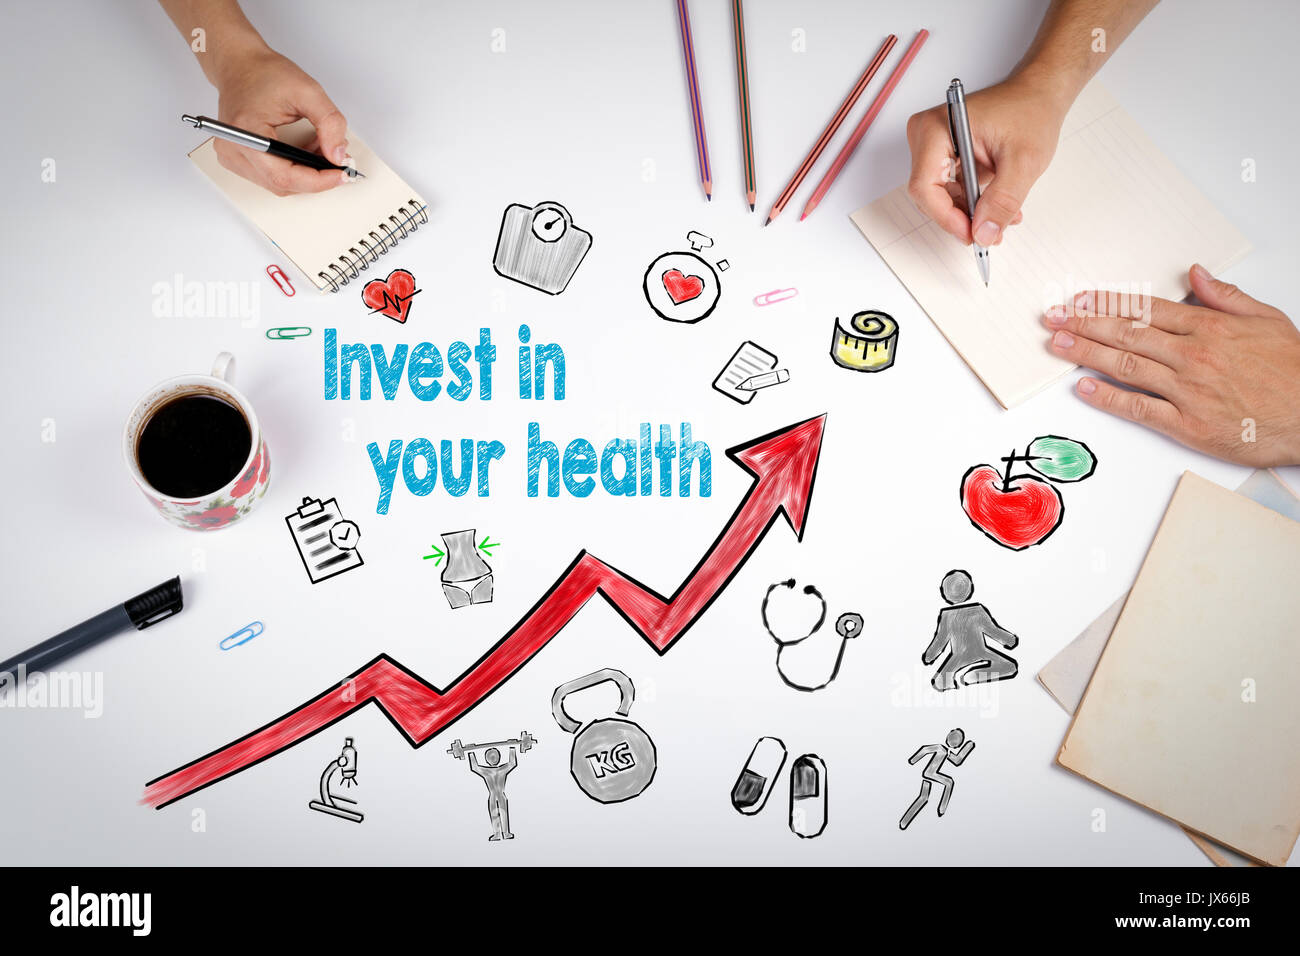 Invest in your health concept. Healty lifestyle background. The meeting at the white office table. - Stock Image